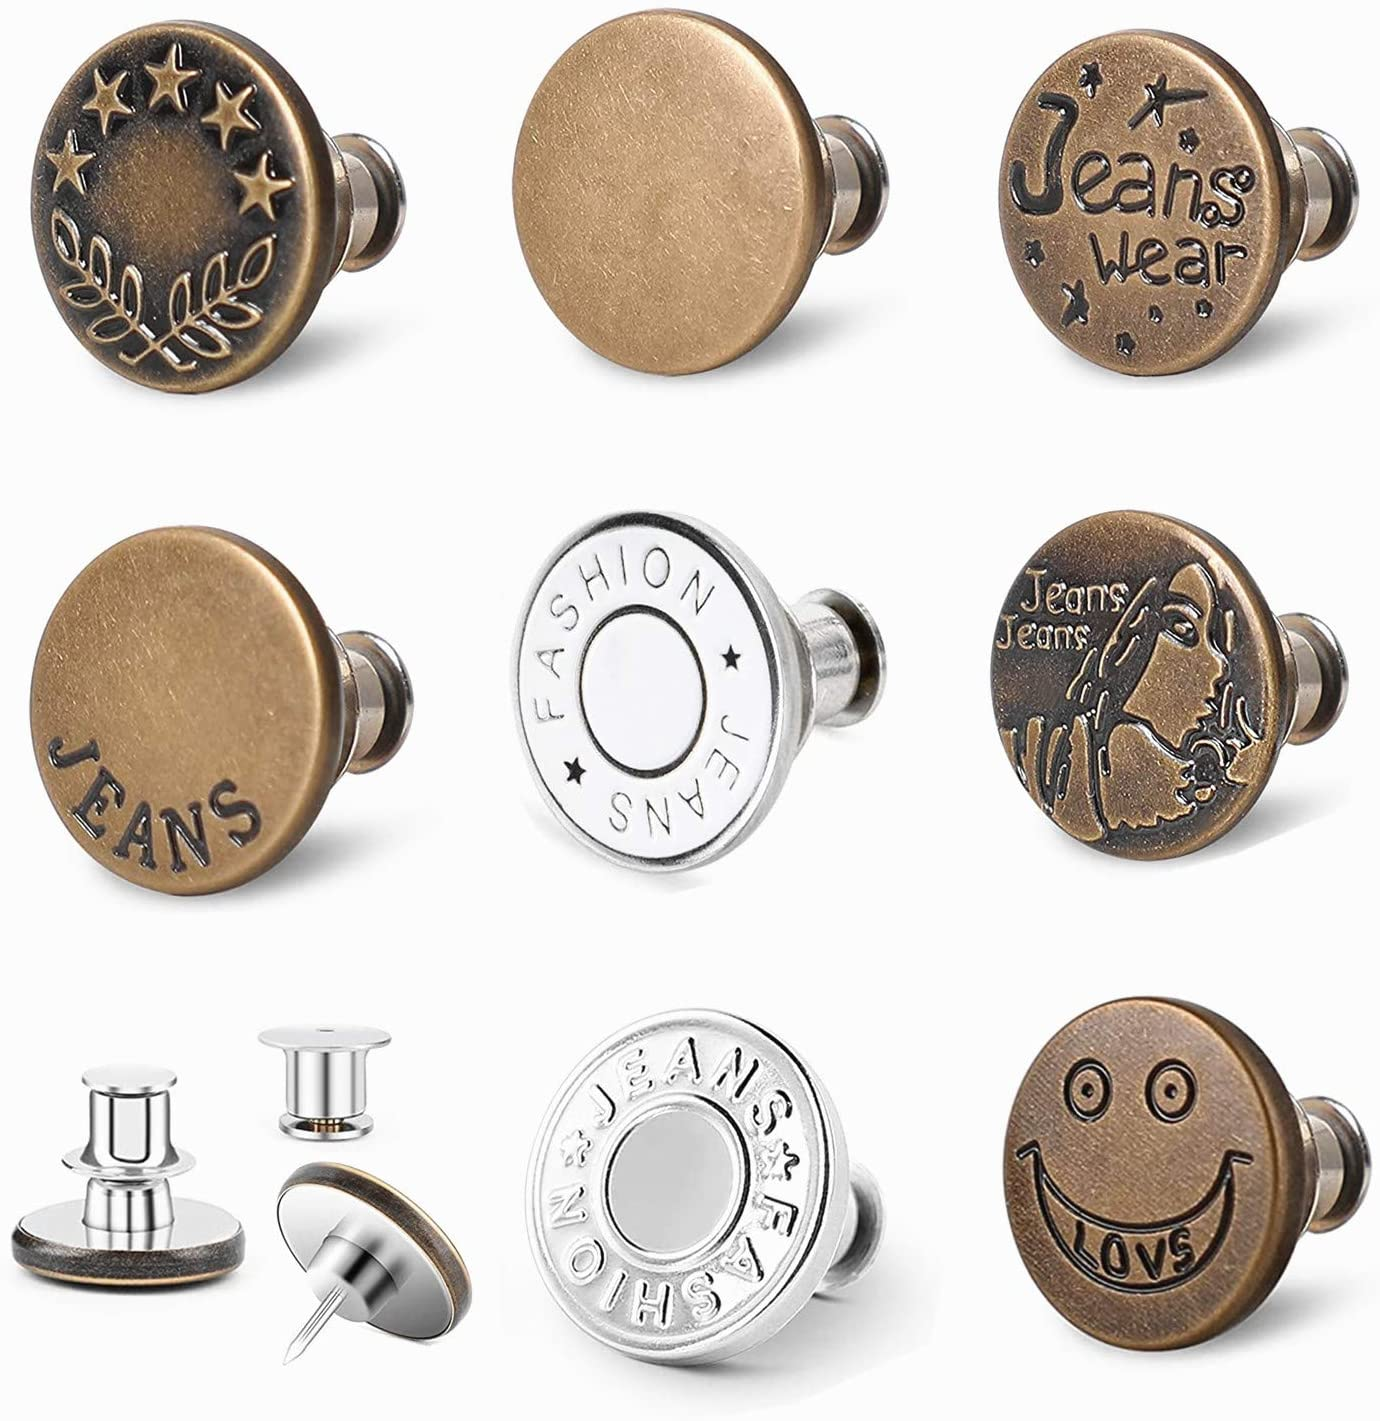 Lifetop 8 Sets Button Pins for Online limited product and Tools No Jeans Sew Sale SALE% OFF Instan